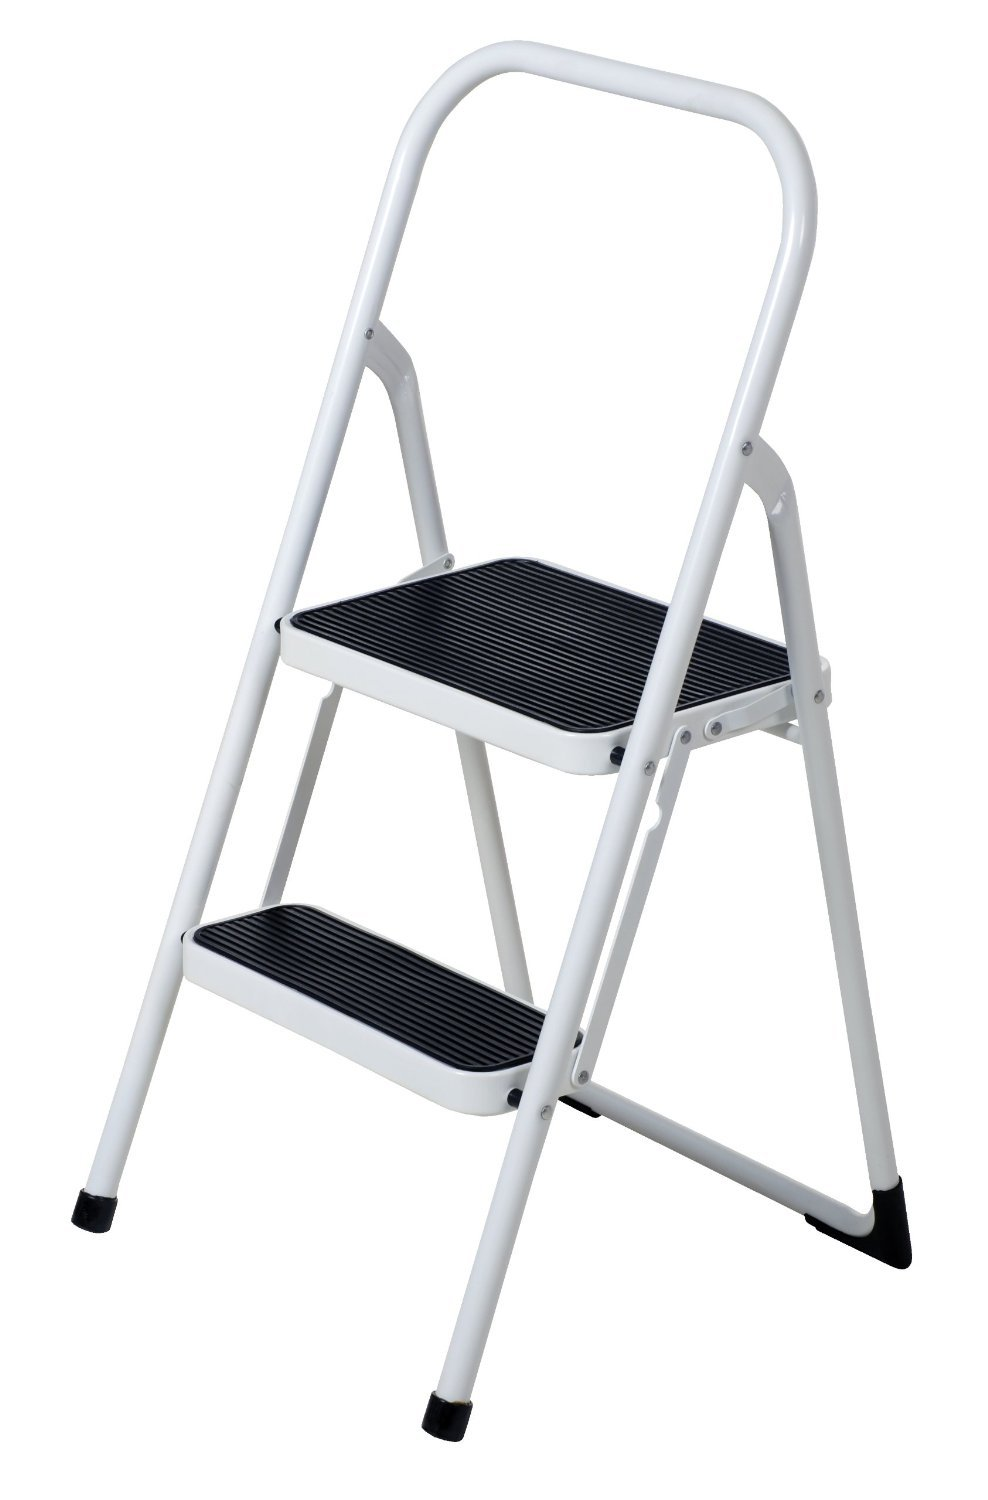 Above Edge AE2065 2 Steps Folding Lightweight Ladder, Stool for Home & Office Use